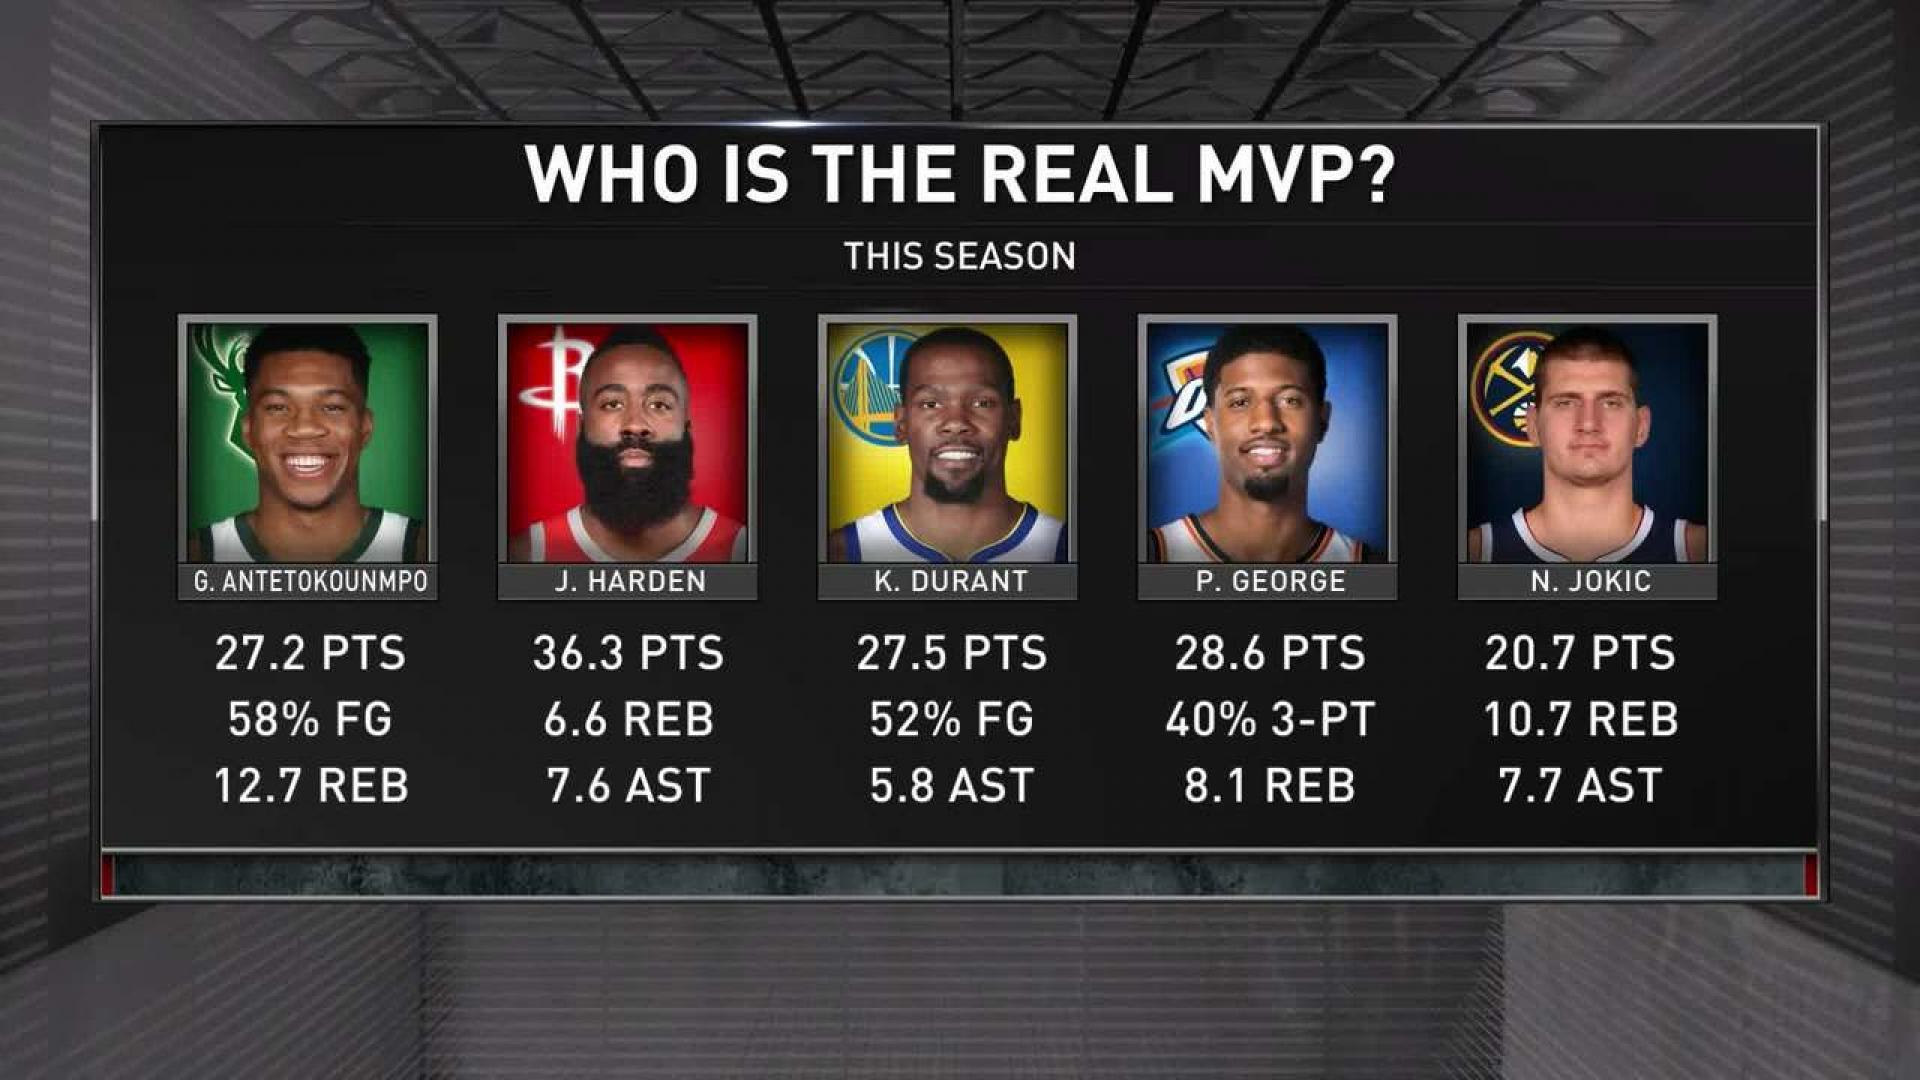 Who Is The MVP?